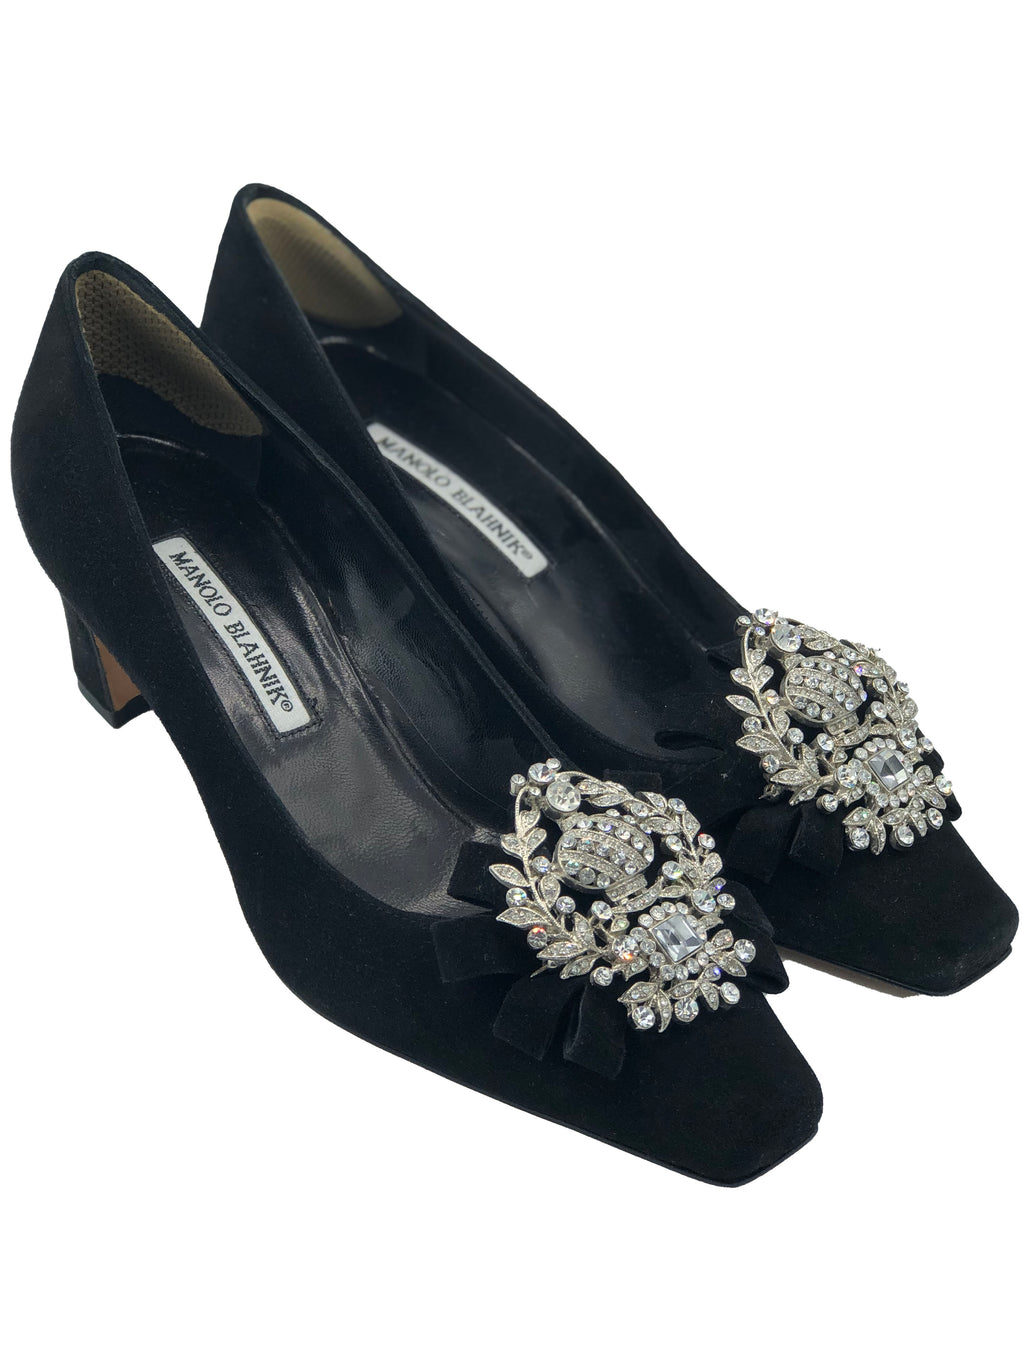 Manolo Blahnik Black Low Heeled Pumps with Diamante Decorations FRONT 1 of 3